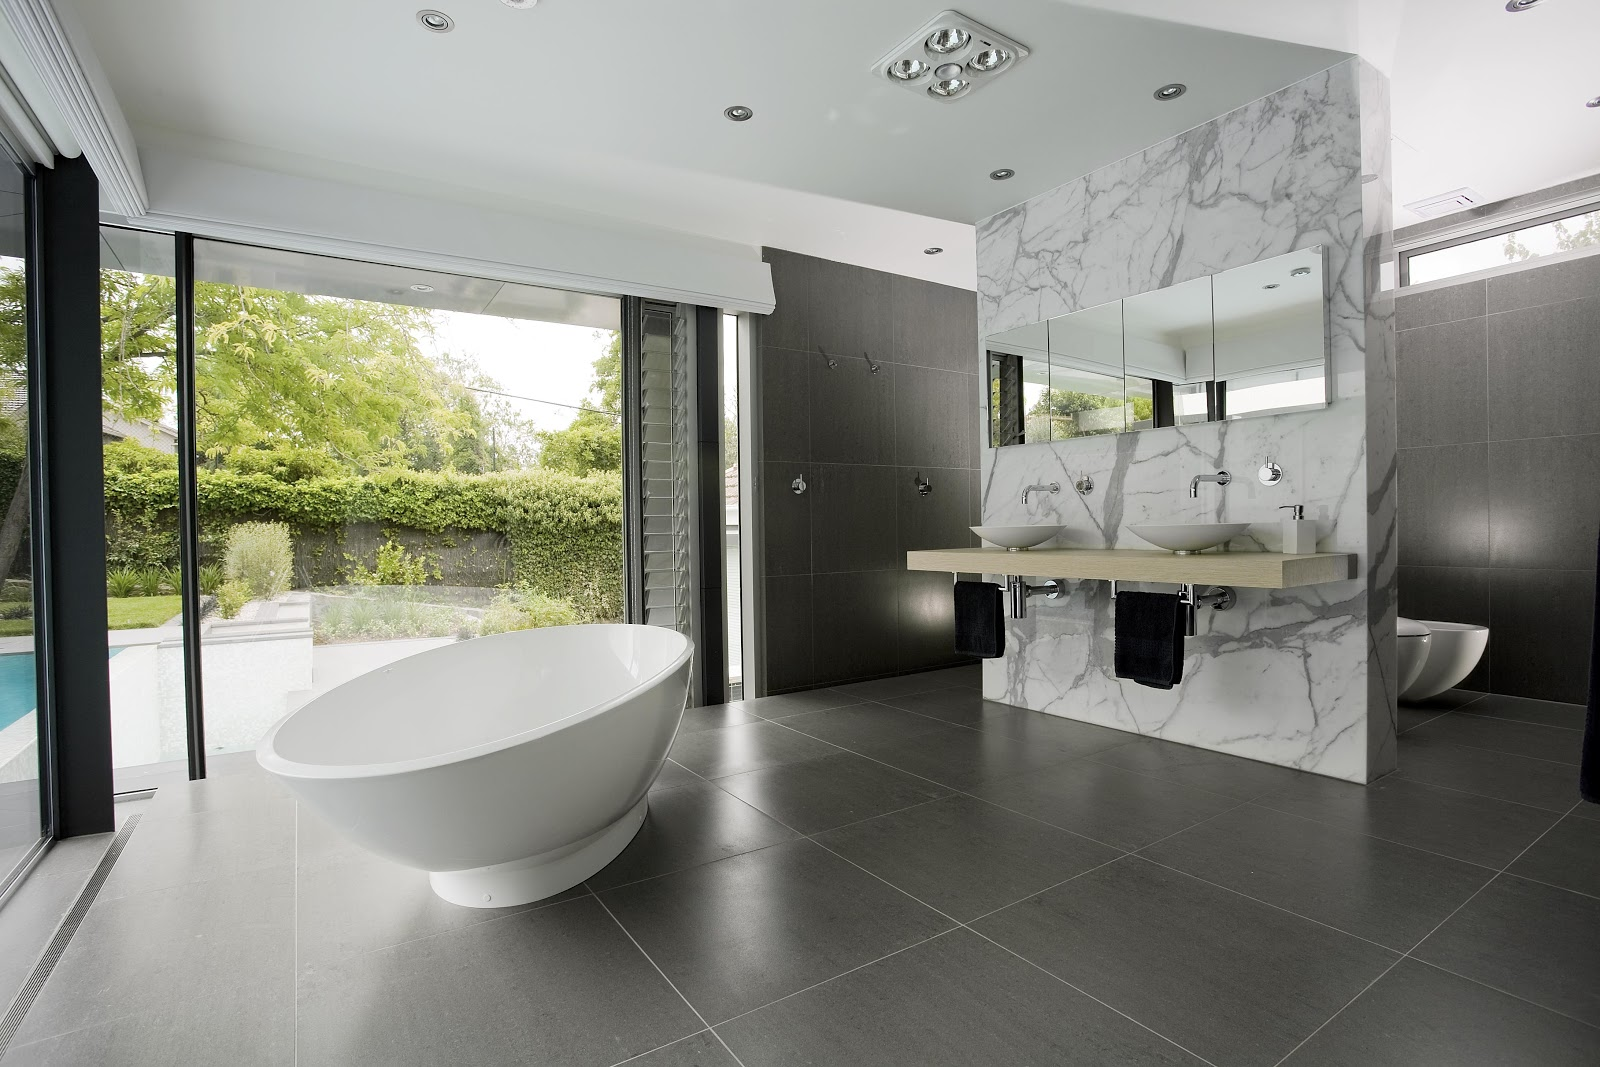 Minosa modern bathrooms the search for something different for Bathroom design ideas modern